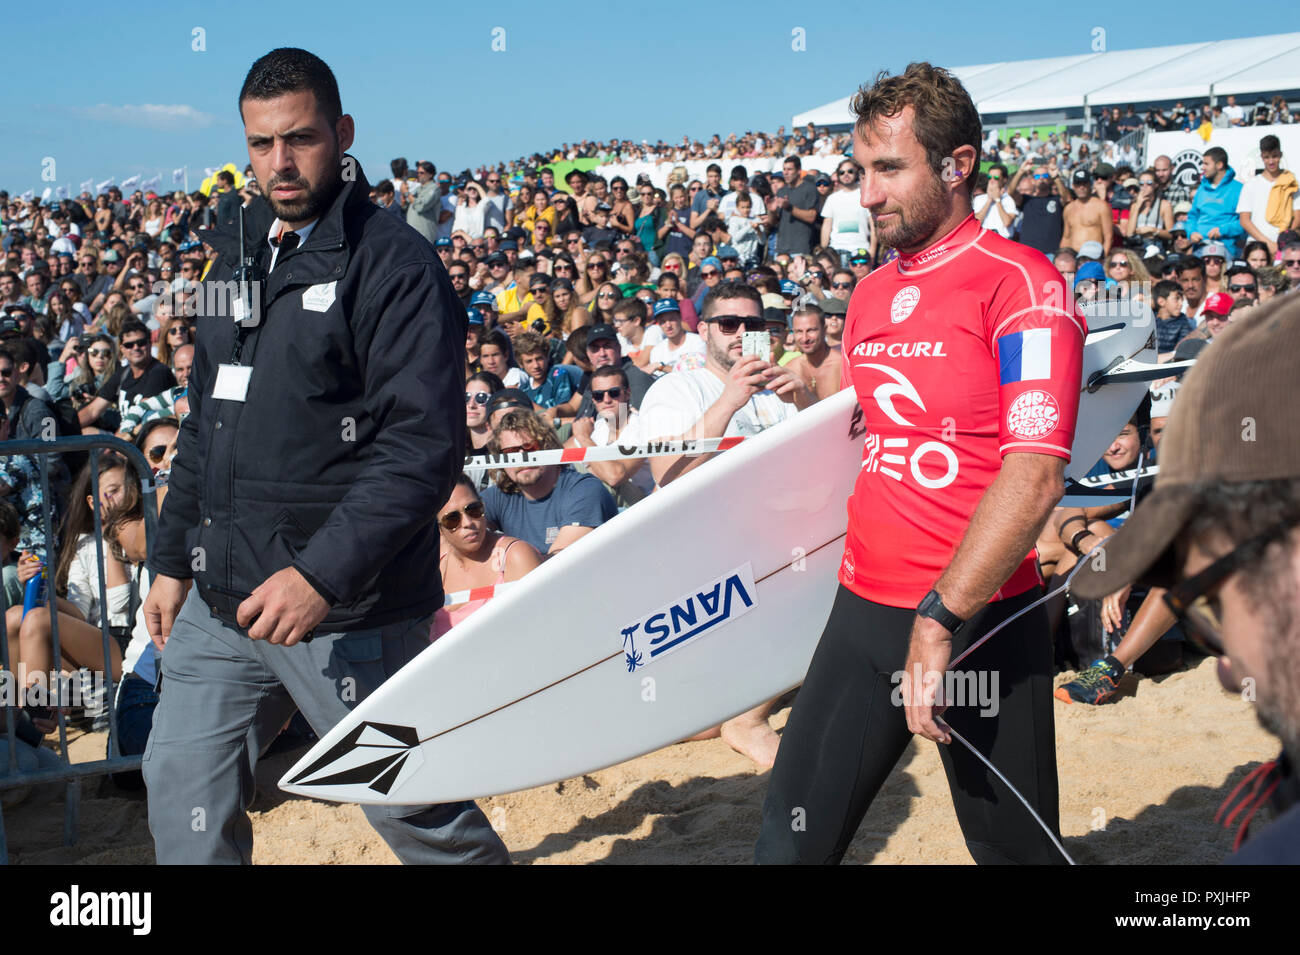 PENICHE, PORTUGAL - OCTOBER 20, 2018: Joan Duru going to the ocean among the crowd of surf funs during the World Surf League's 2018 MEO Rip Curl Pro Portugal competition - Stock Image